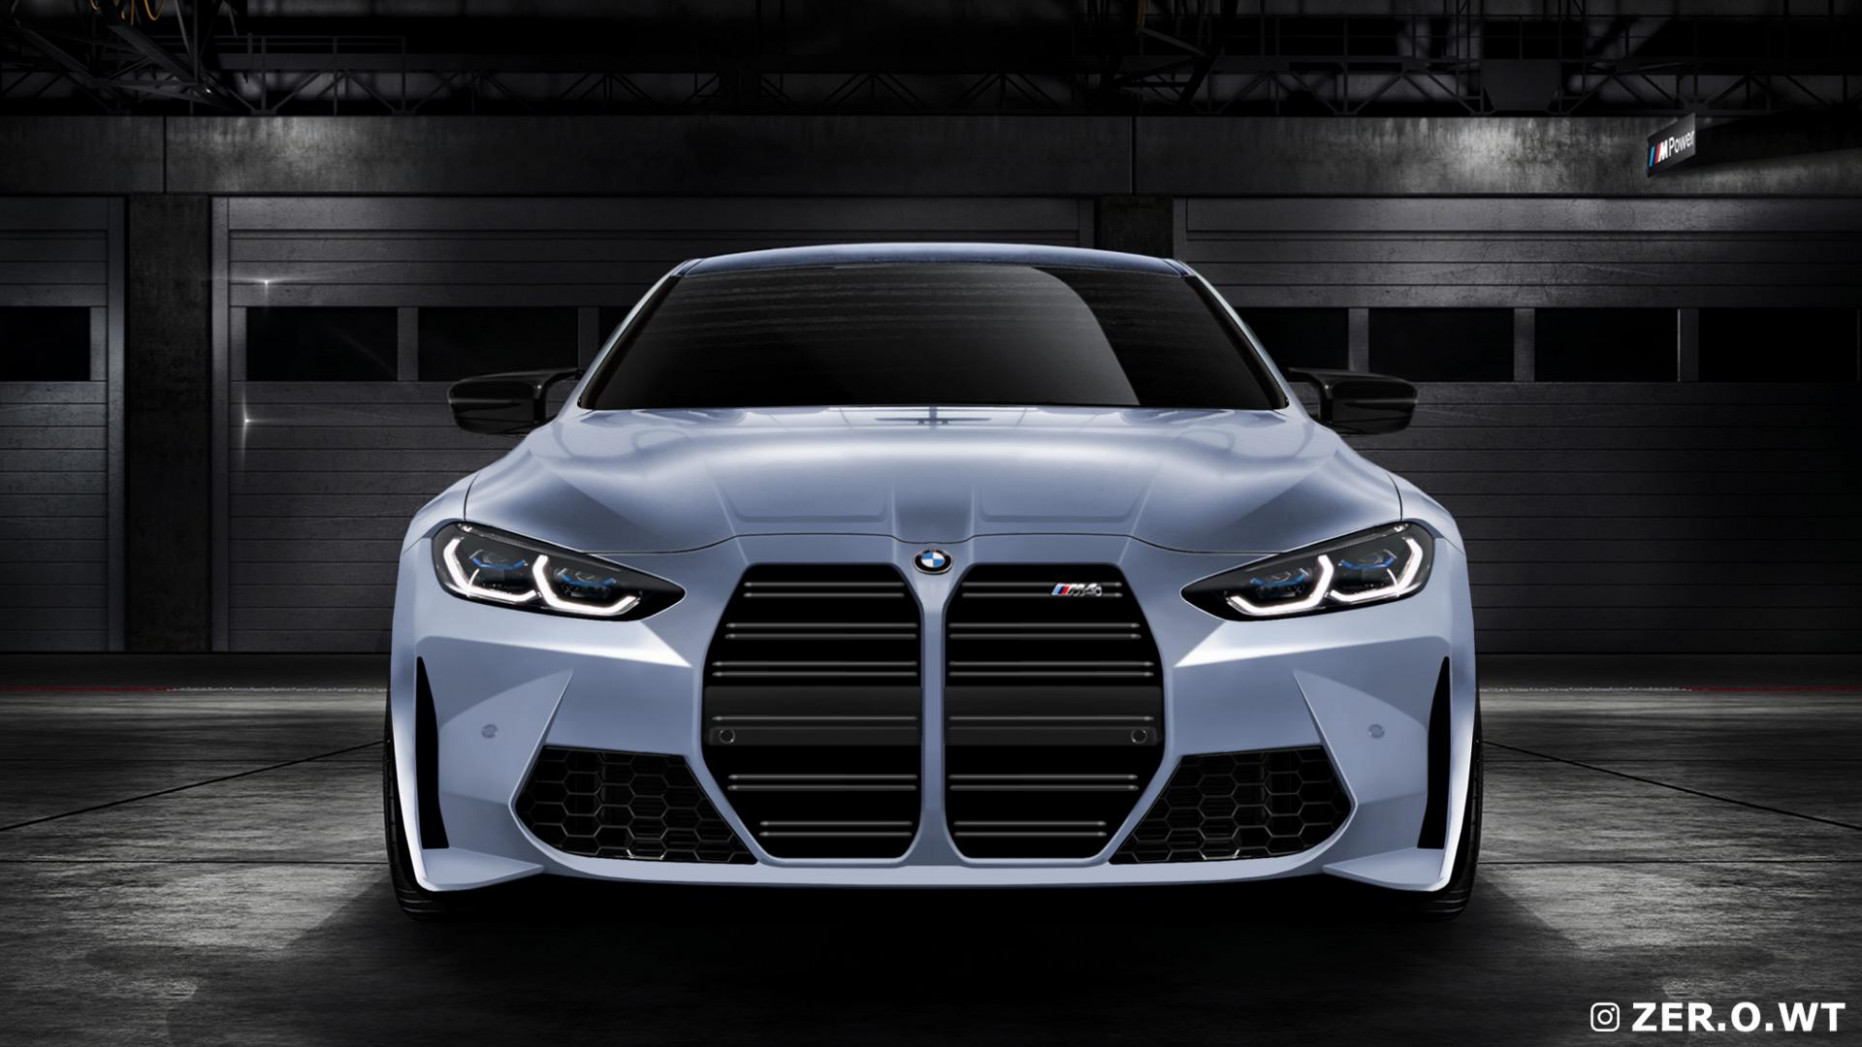 New Model and Performance 2022 BMW M4 Gts